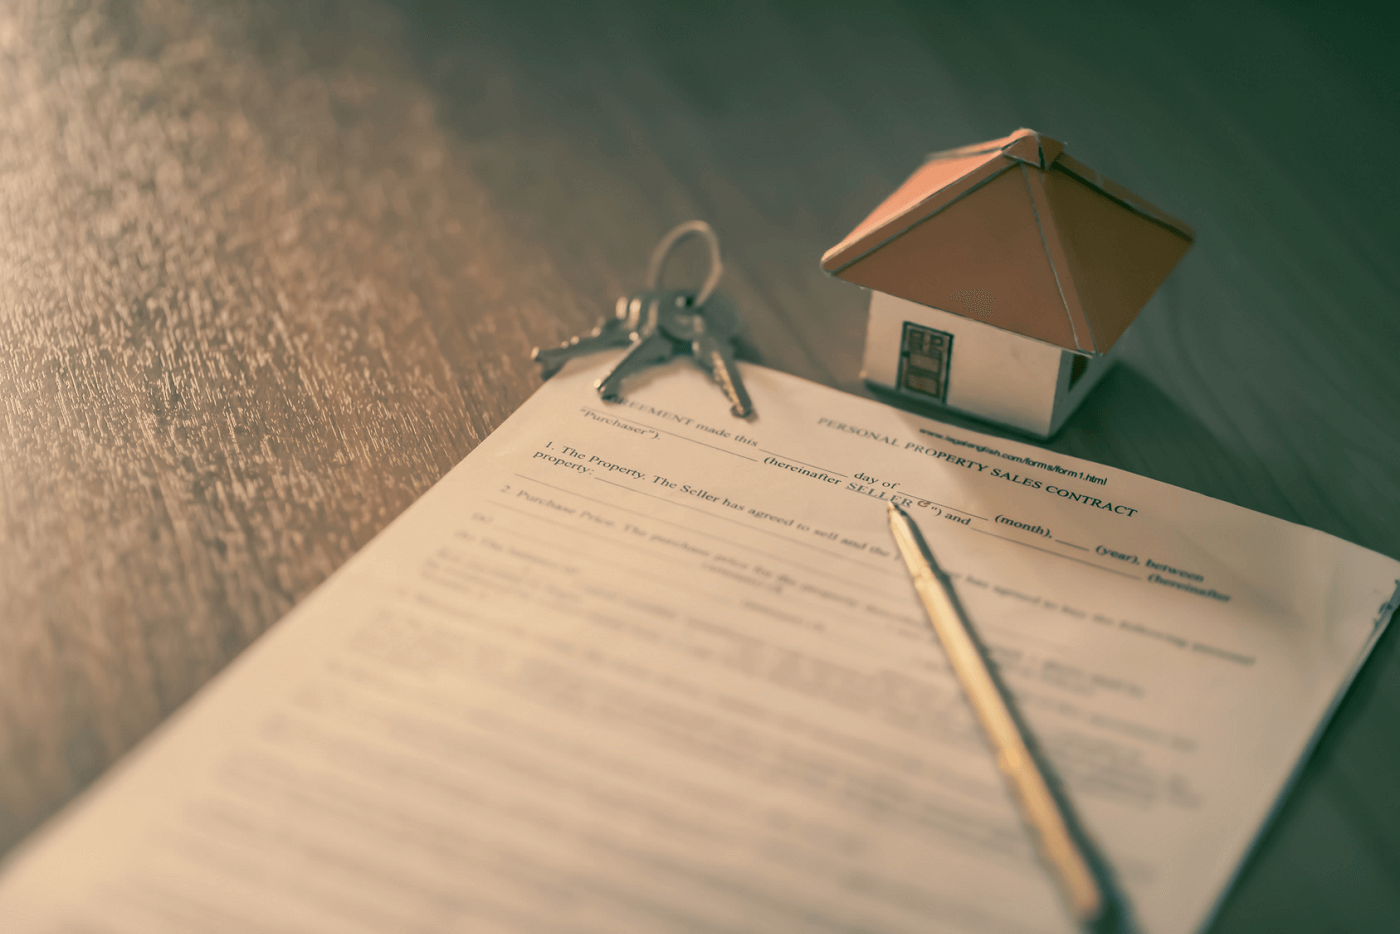 rental-contract-with-house-on-keys